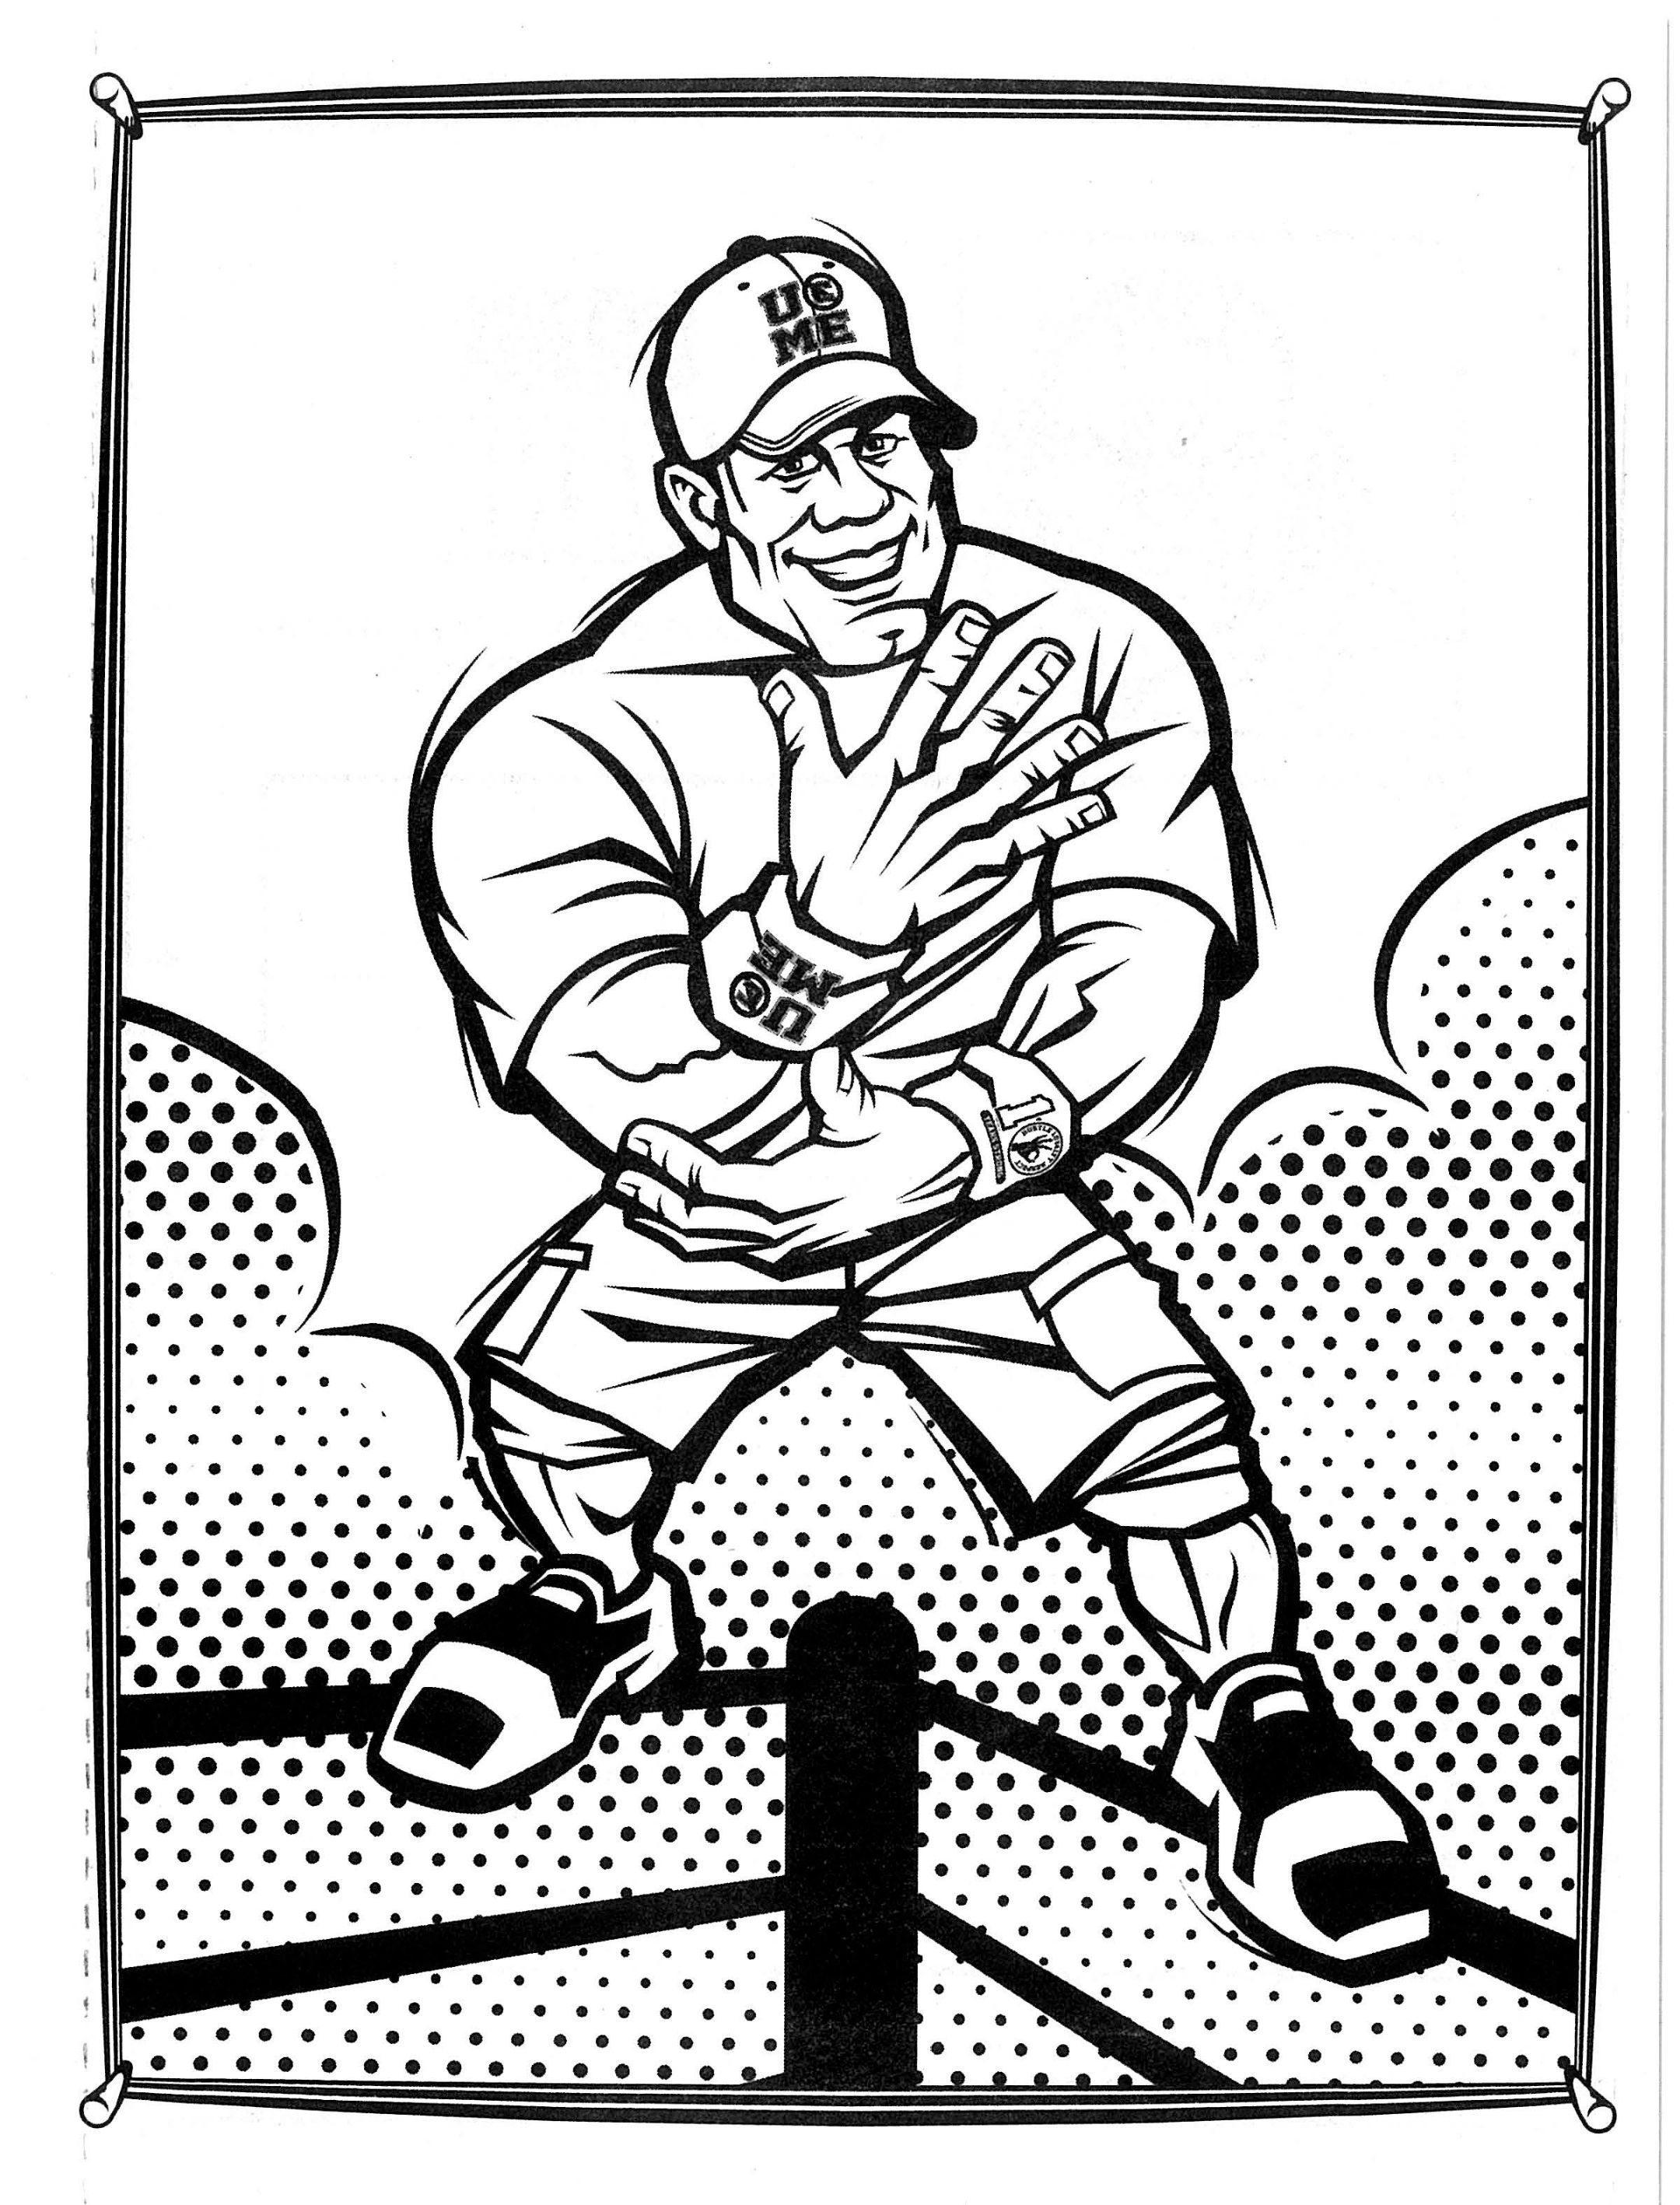 wwe coloring pages to print 19 best wrestling wwe coloring pages for kids updated 2018 wwe to pages coloring print